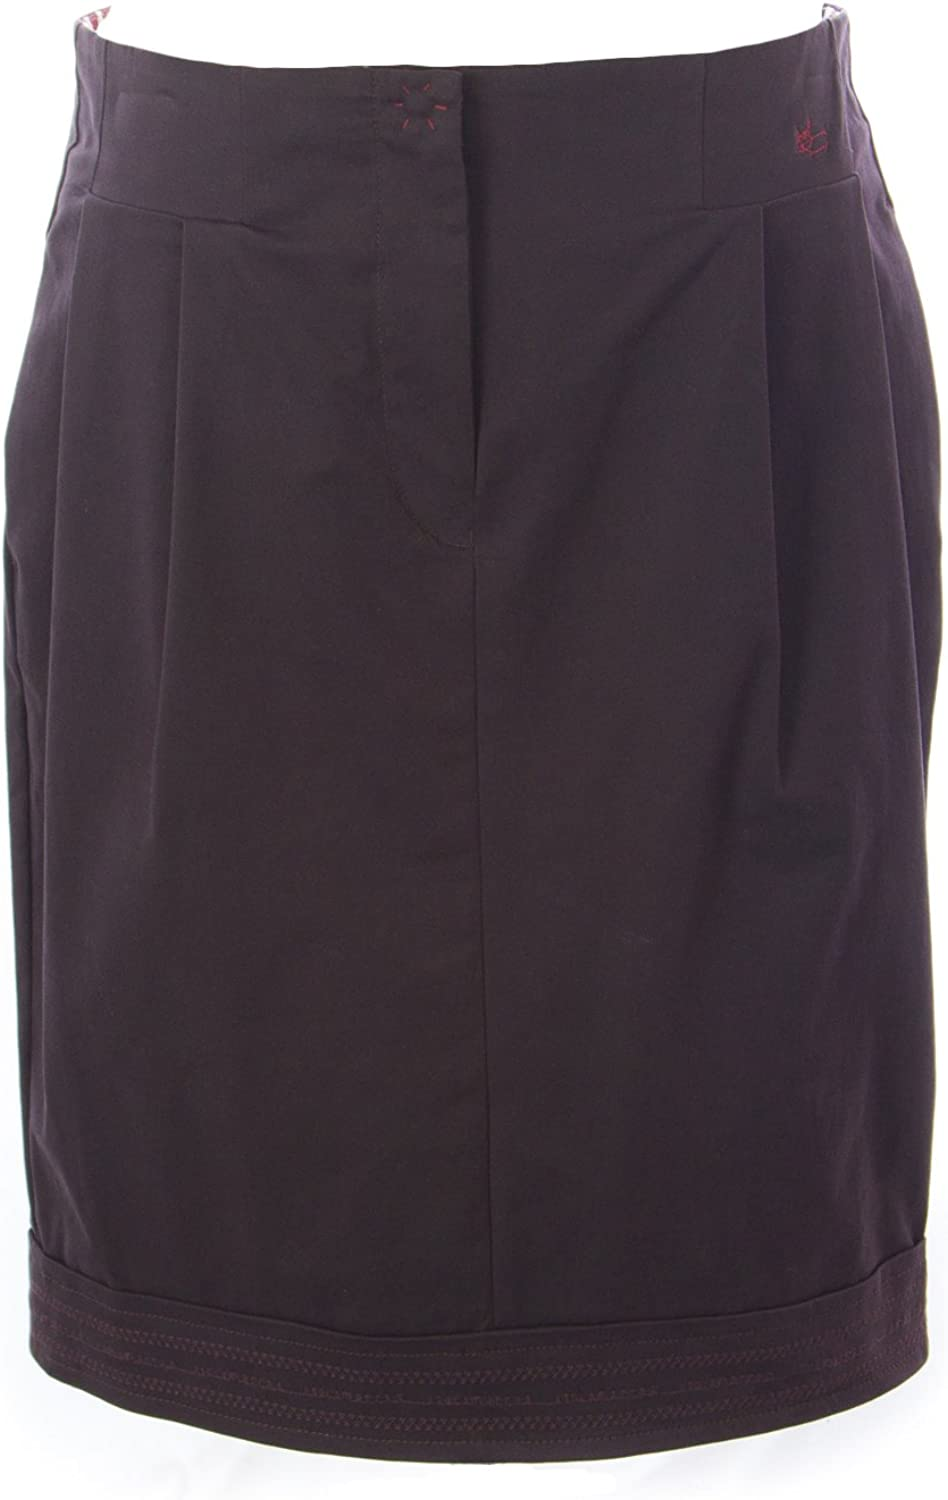 I'M ISOLA MARRAS Women's Cotton Skirt 29 Dark Purple